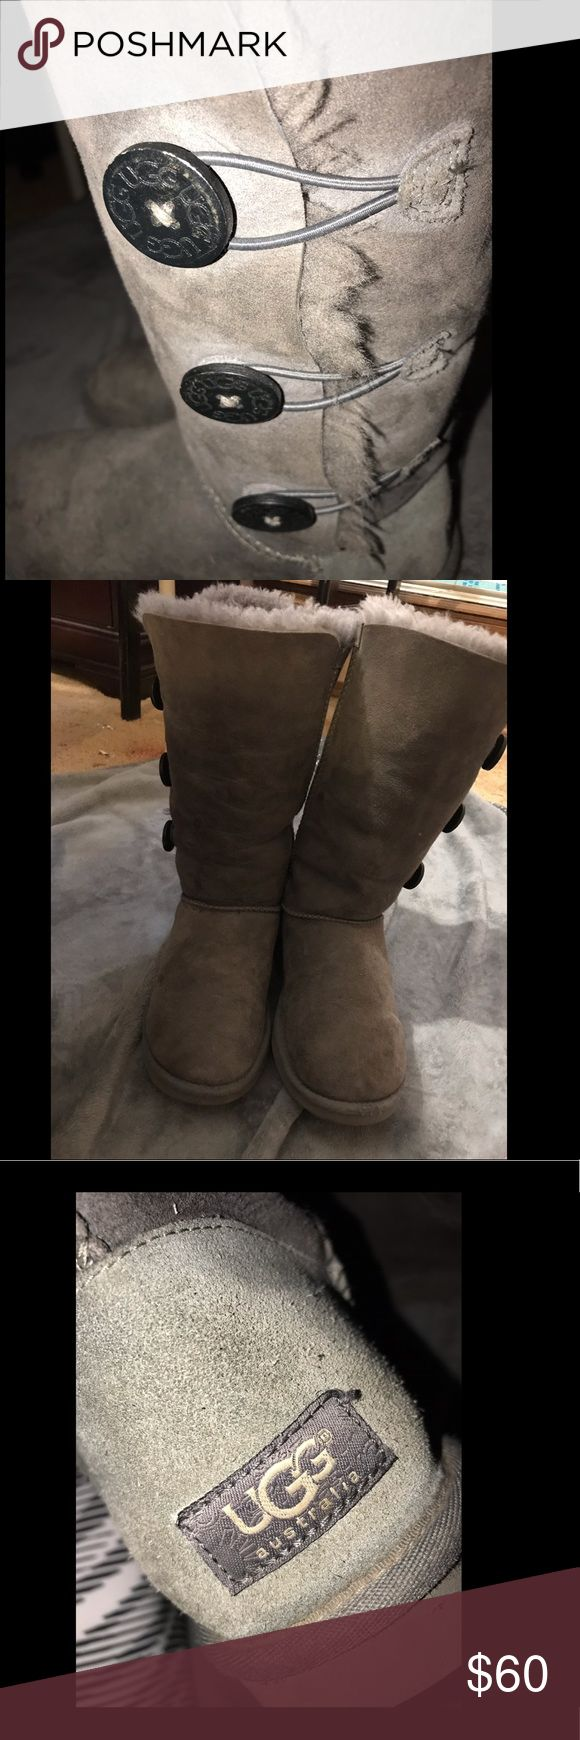 Size 8 Tall Grey Uggs worn a few times, some wear but overall in great condition! soft and warm for winter! UGG Shoes Winter & Rain Boots